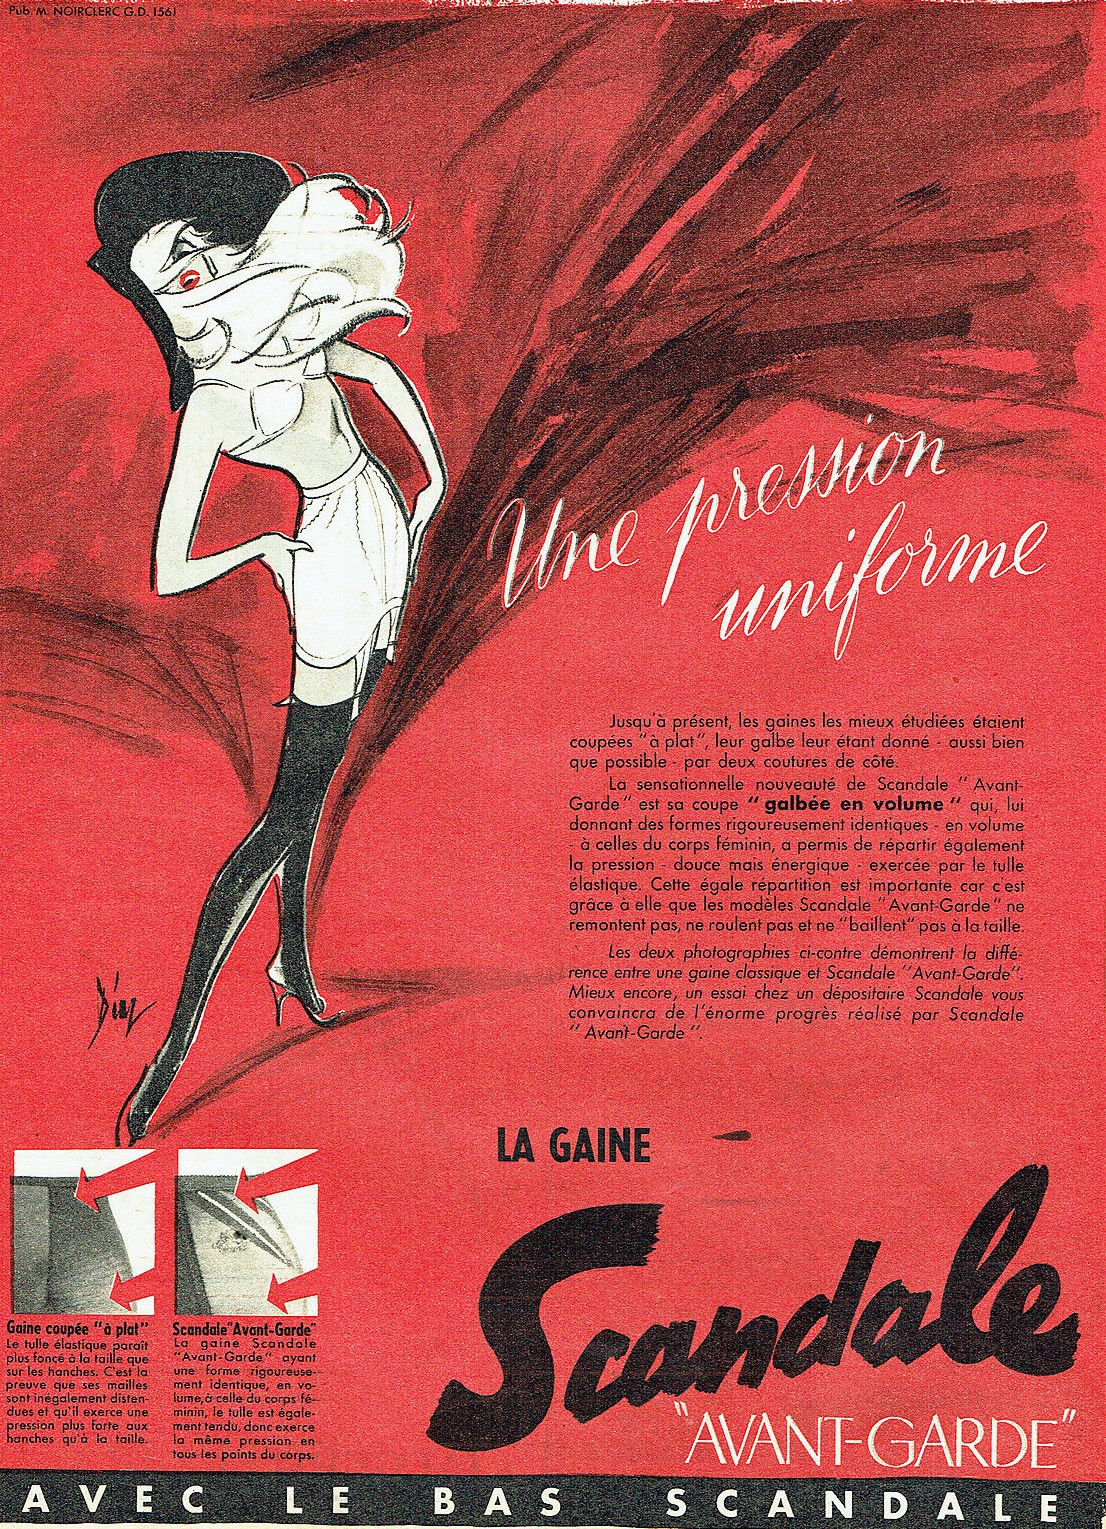 SCANDALE 1956 Diaz la gaine avant- garde B2 Une pression uniforme